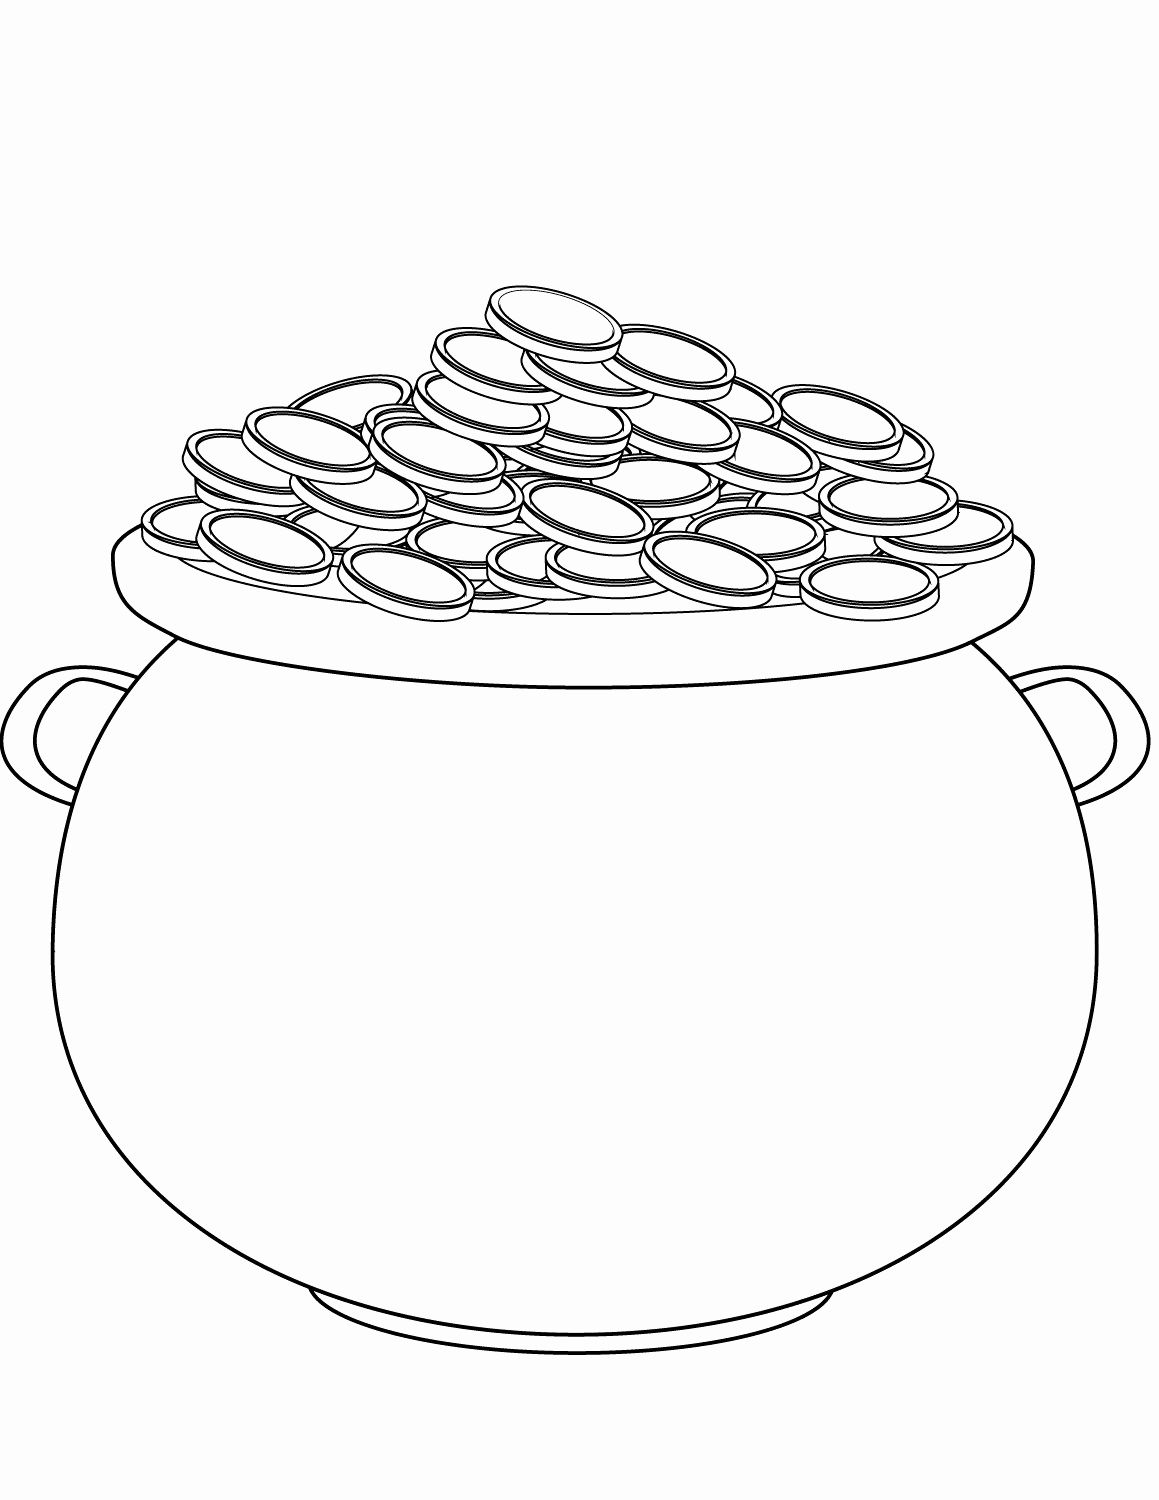 Rainbow Pot Of Gold Coloring Pages For Kids In 2020 Coloring Pages Pot Of Gold Coloring Pages For Kids